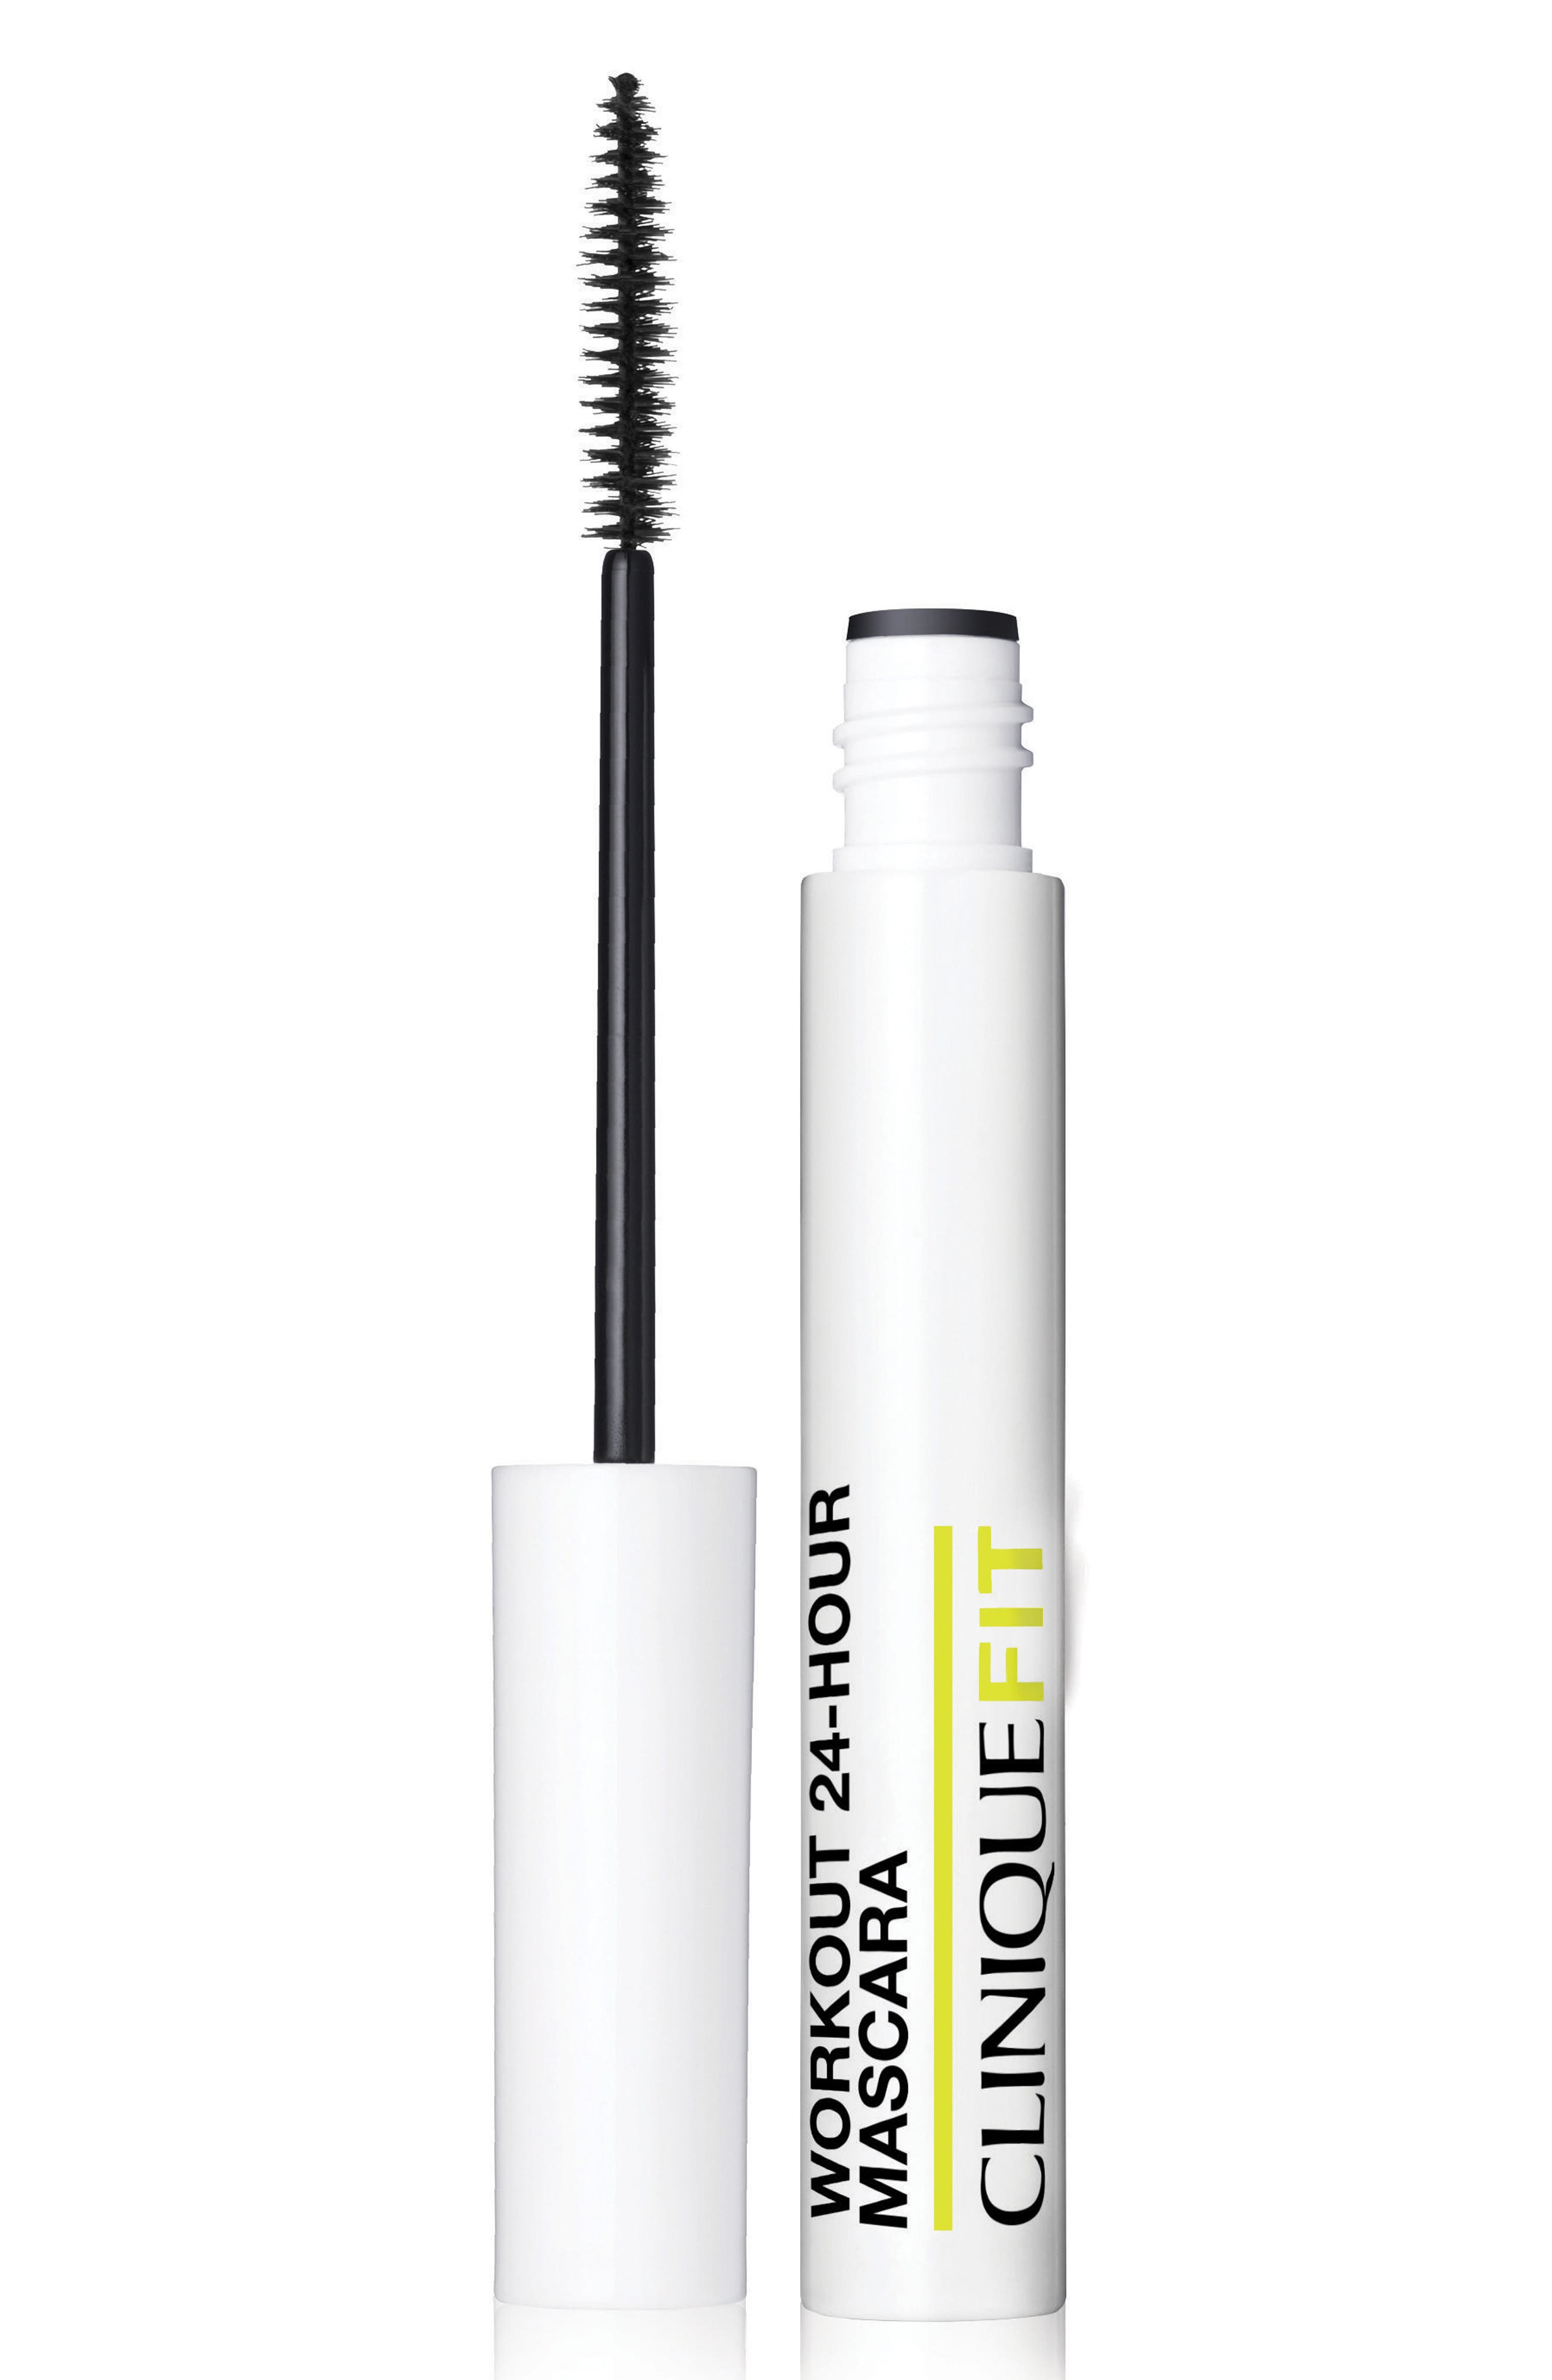 CliniqueFIT Workout 24-Hour Mascara,                             Main thumbnail 1, color,                             No Color